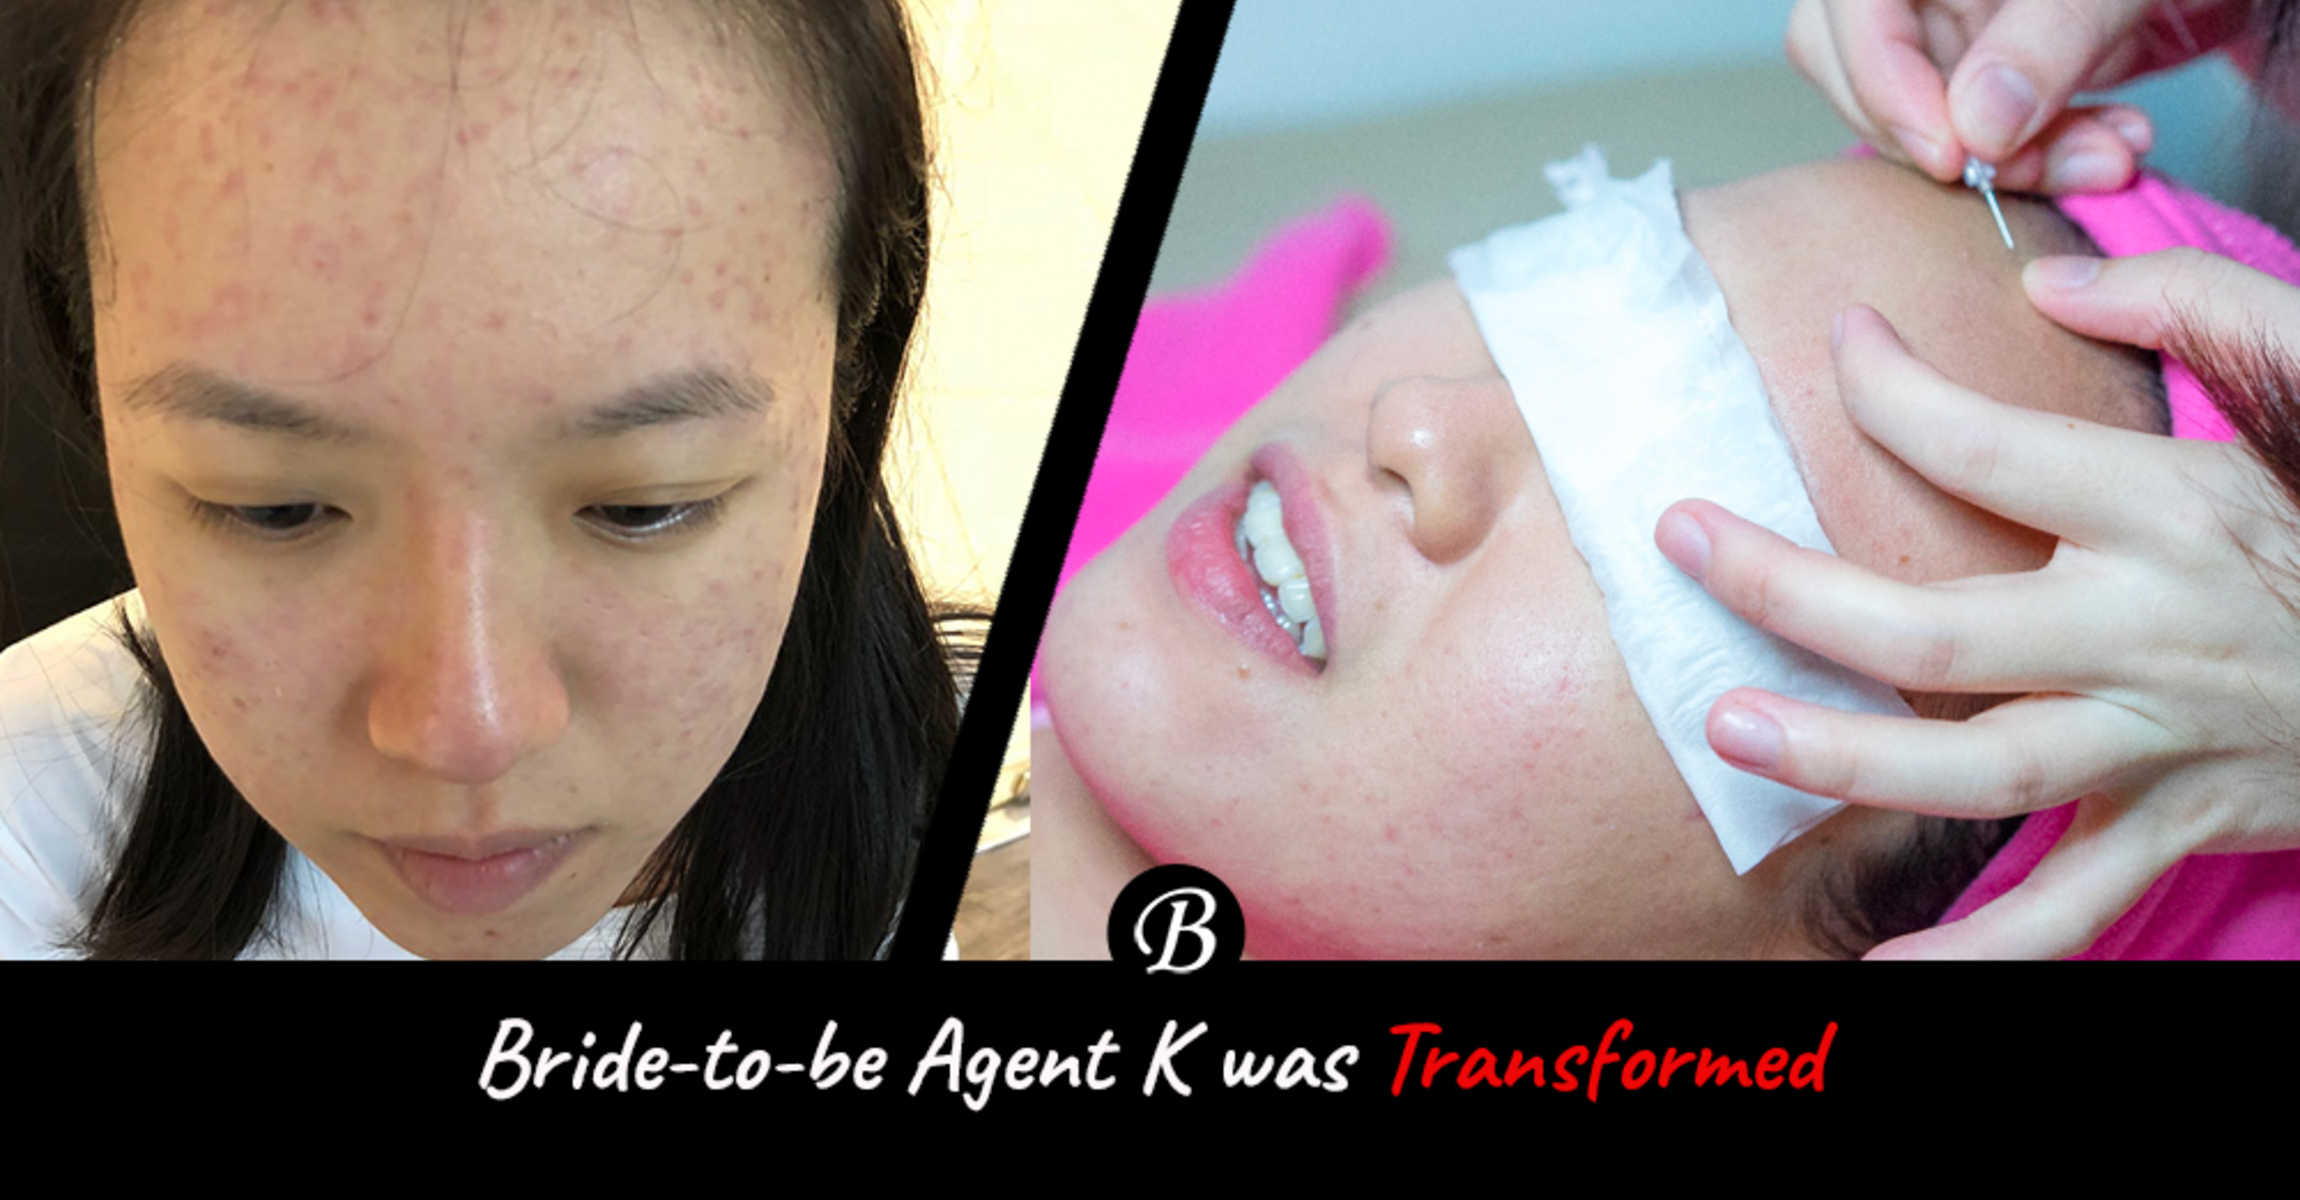 Bride-to-be Agent K Recovered from Acne After Going For a Facial Here.